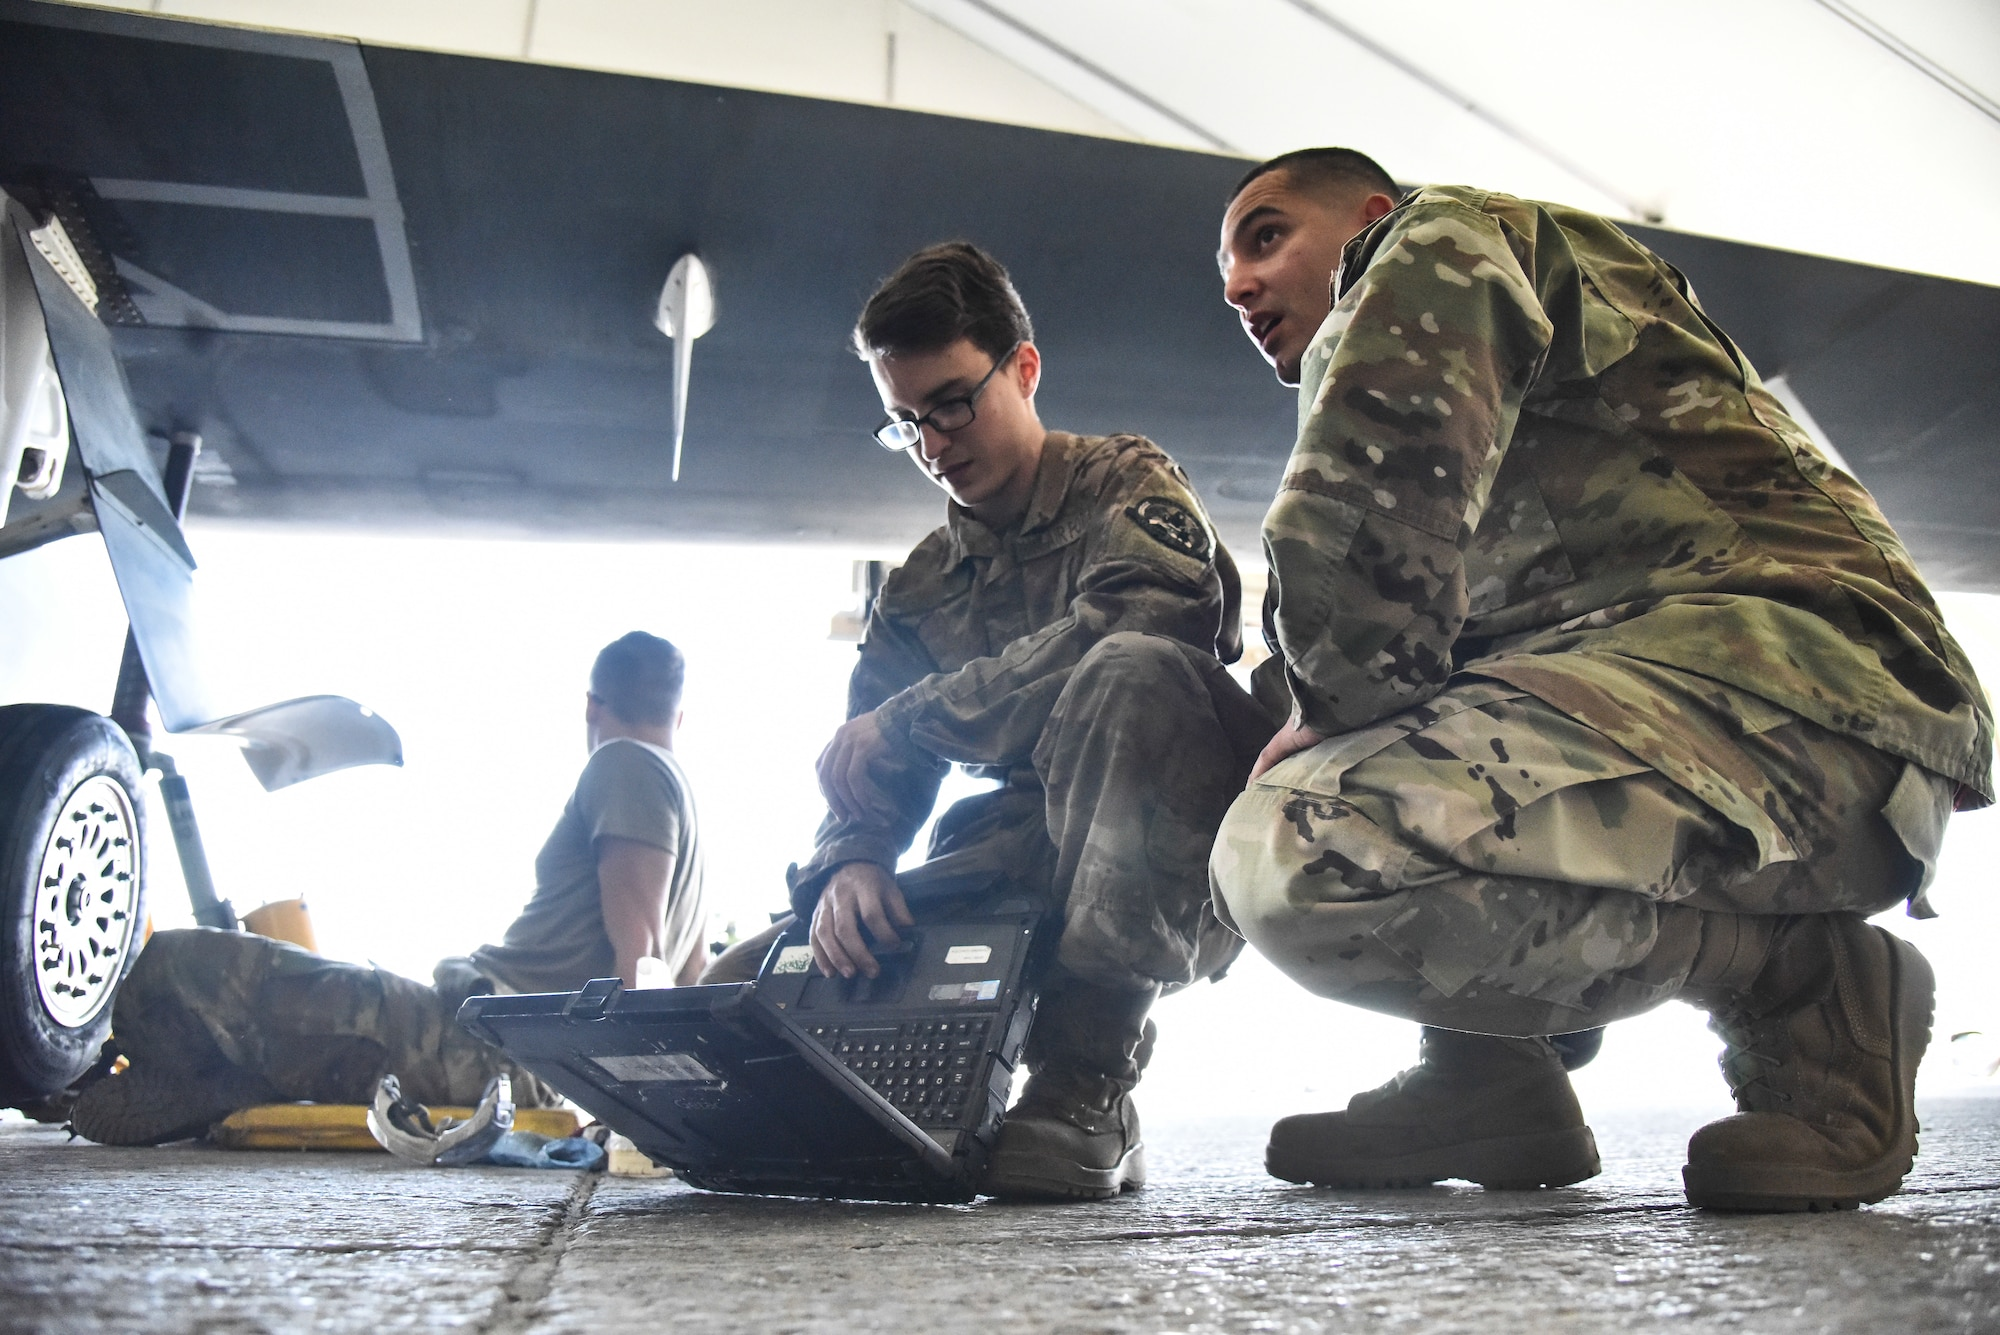 Staff Sgt. Luis Rosa, 380th Expeditionary Maintenance Group RQ-4 Global Hawk and U-2 Dragon Lady quality assurance inspector, inspects an RQ-4 Global Hawk and its crew at Al Dhafra Air Base, United Arab Emirates, March 12, 2019. QA is responsible to the Maintenance Group commander or equivalent to perform as the primary technical advisory agency for maintenance actions and to assist work center supervisors in reviewing tasks involved in supporting the maintenance effort. (U.S. Air Force photo by Senior Airman Mya M. Crosby)